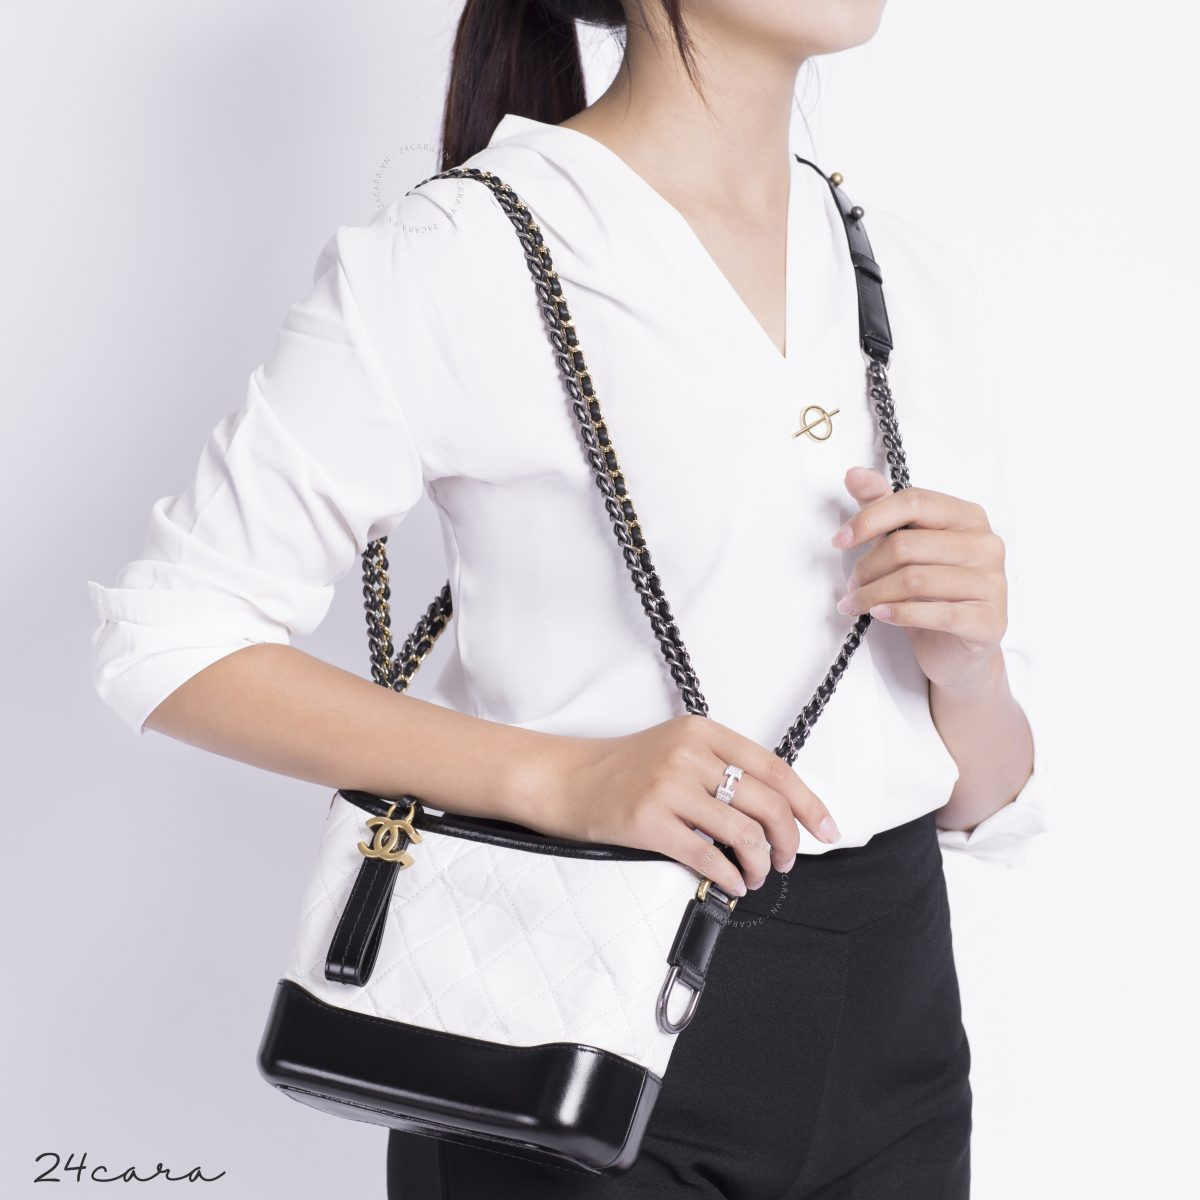 CHANEL GABRIELLE SMALL HOBO BLACK AND WHITE LEATHER BAG